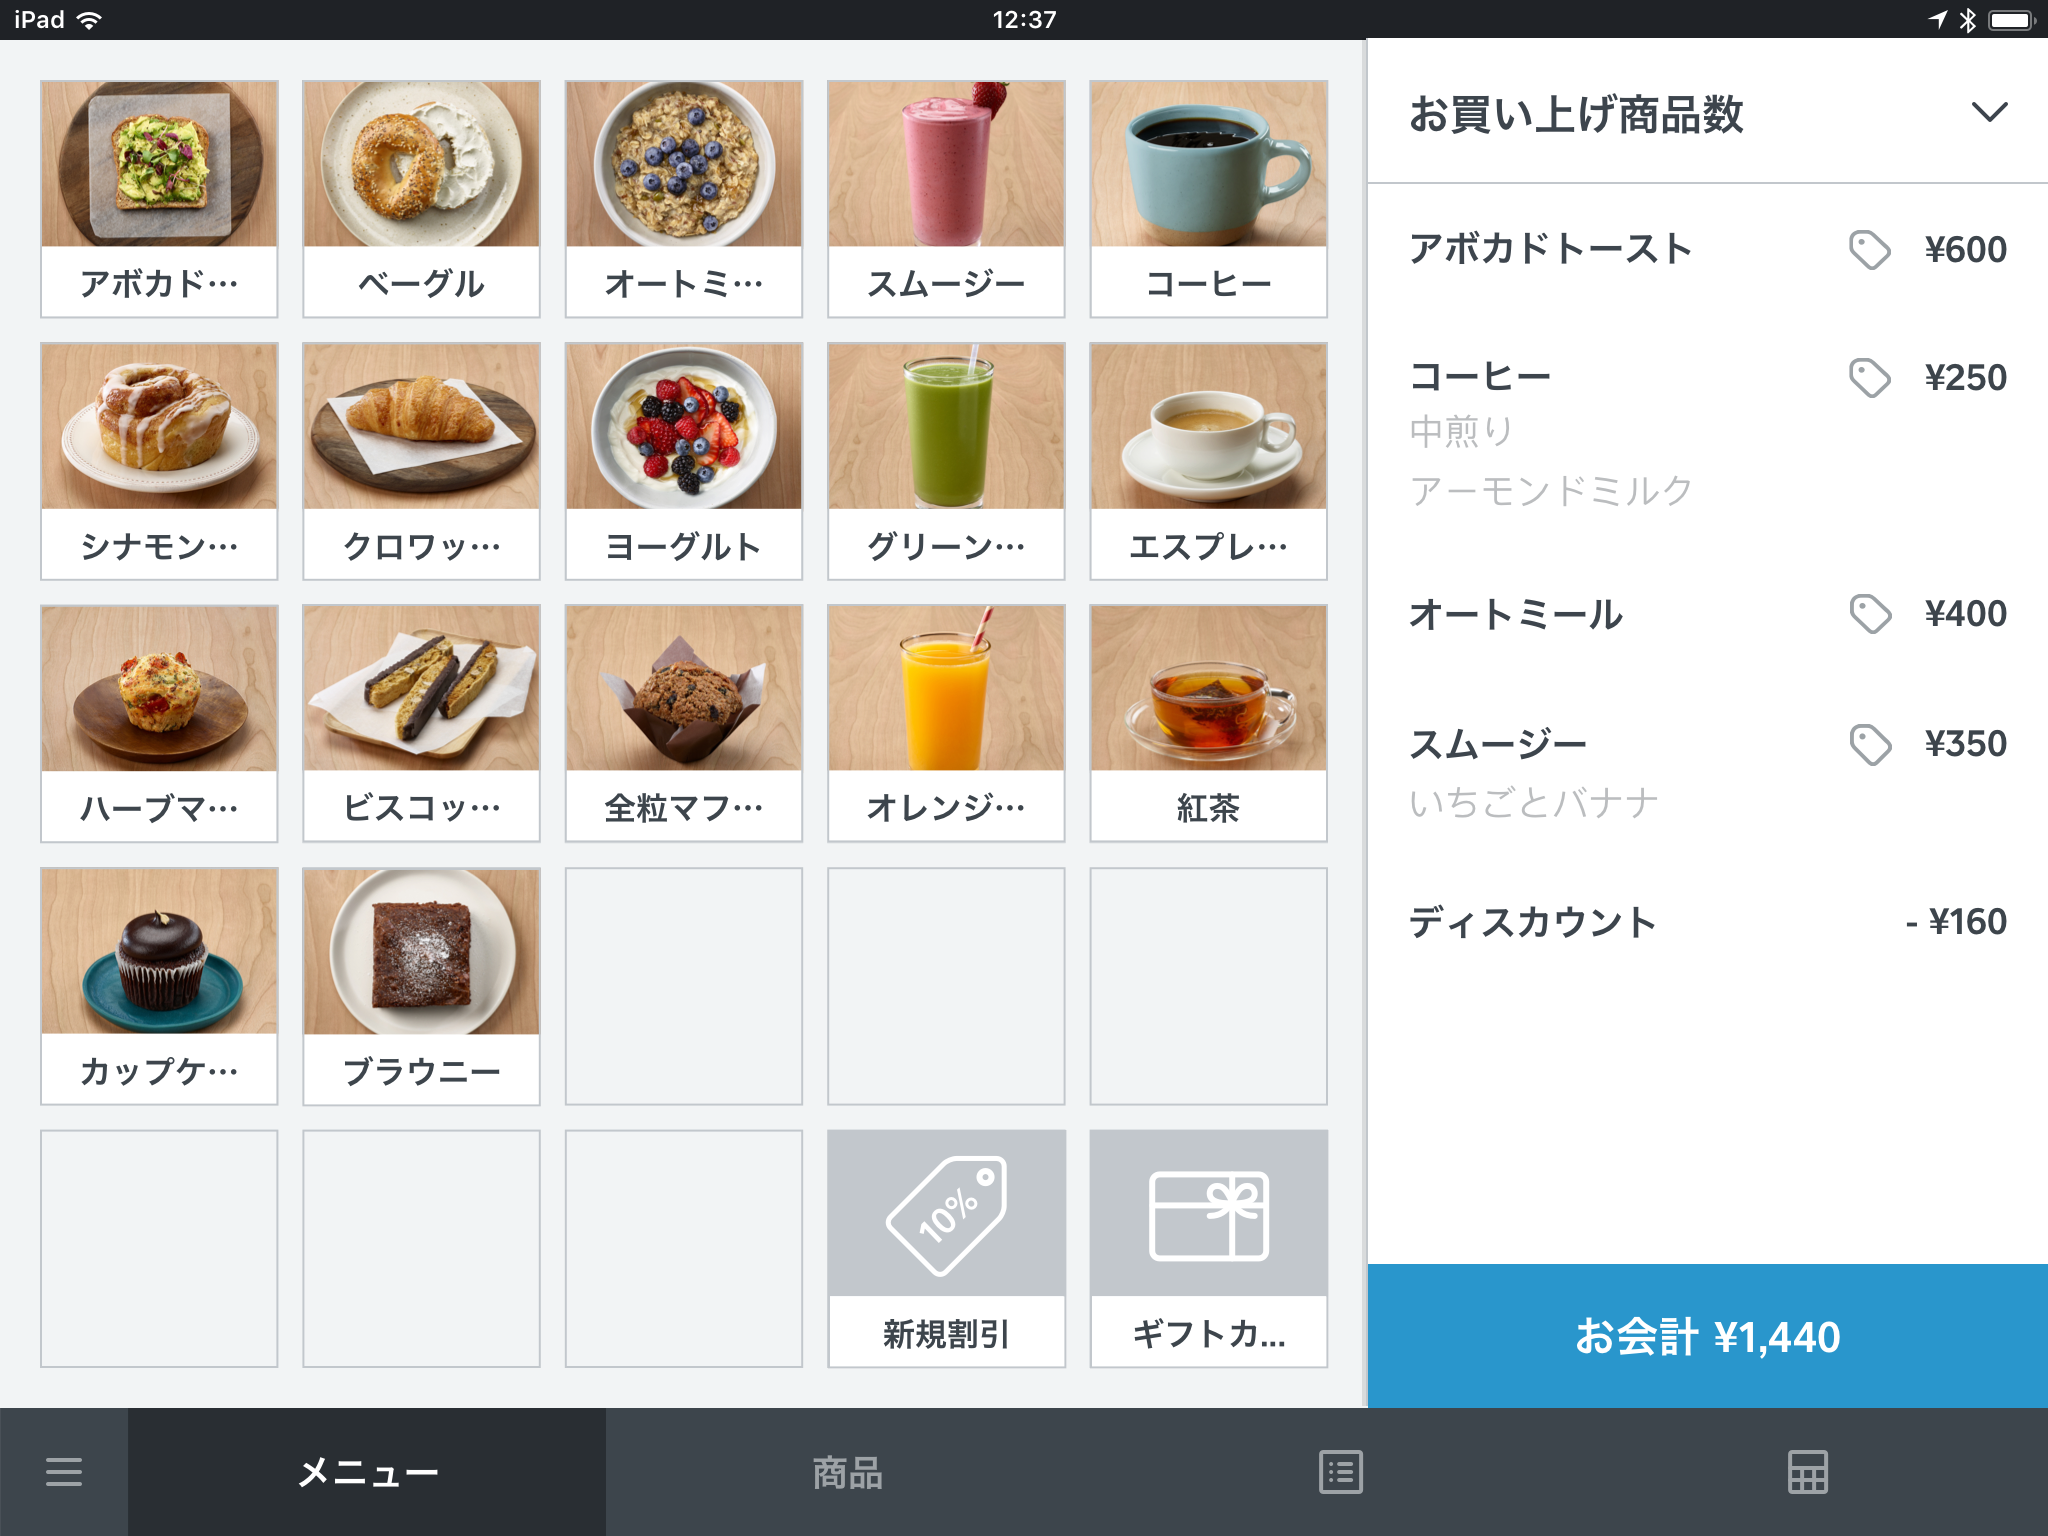 POS_JP_iPad_Favorites_QSR-Cafe_4.87